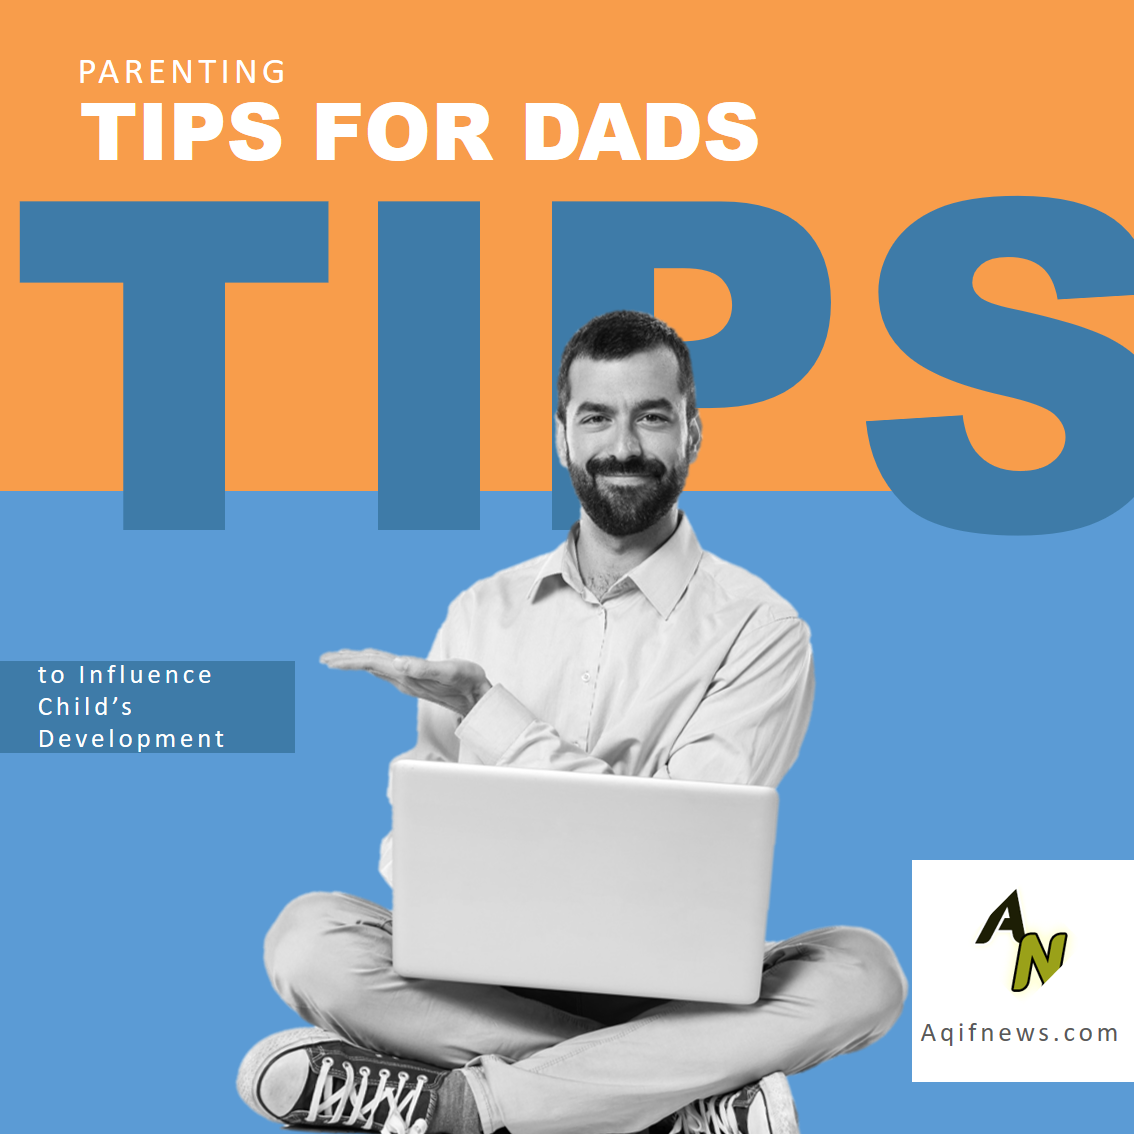 Parenting Tips for Dads